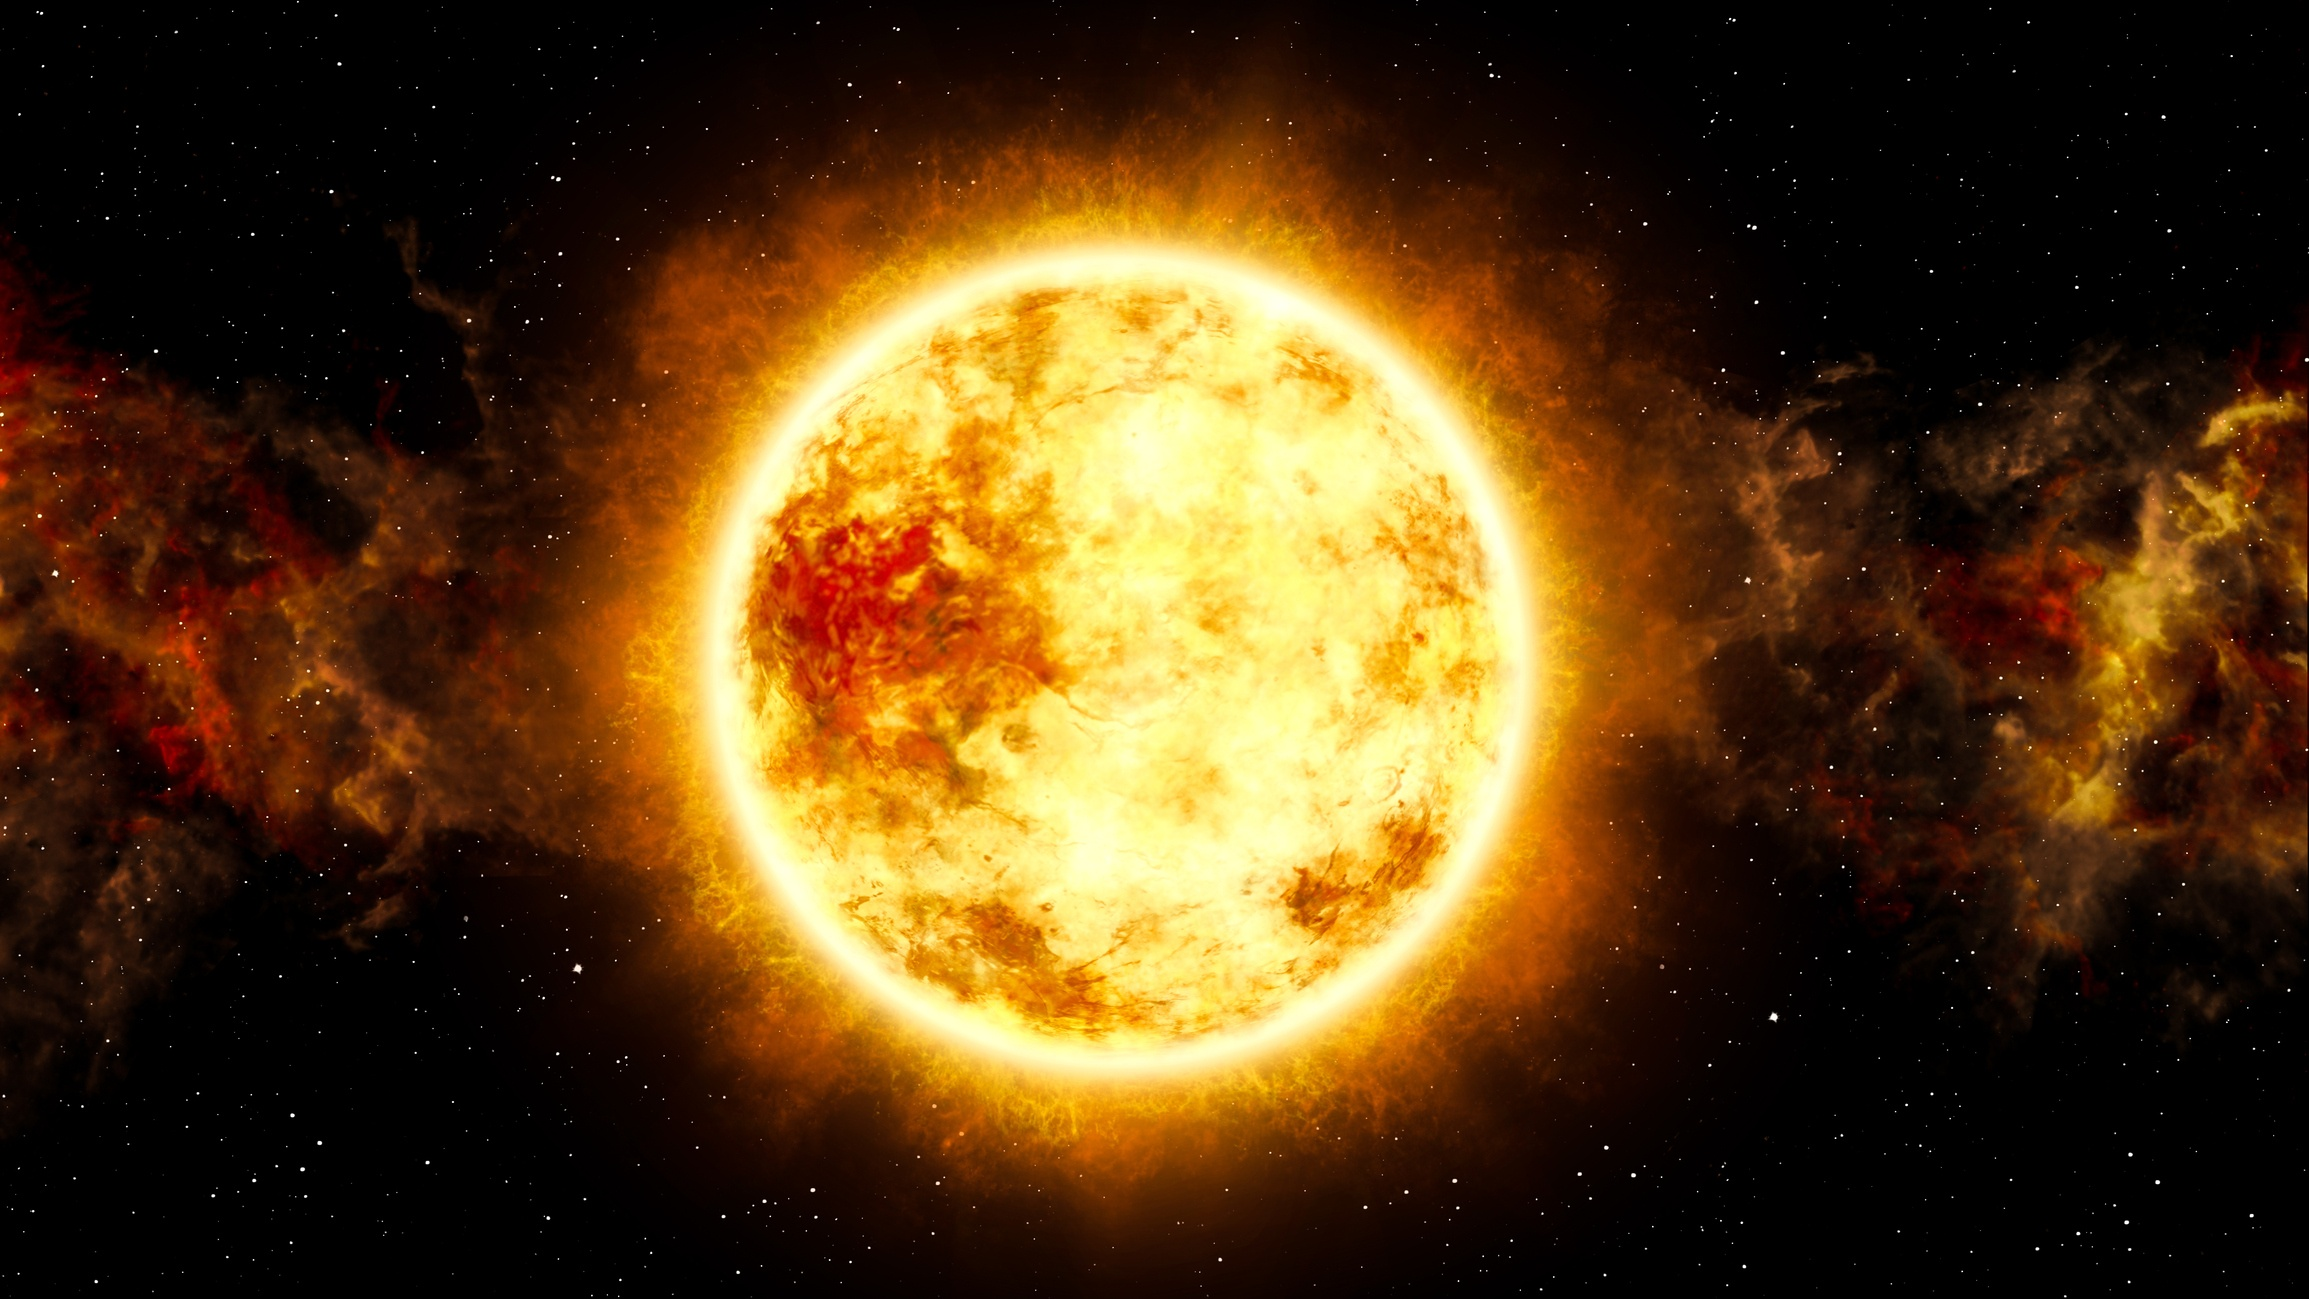 Sun and Star with Cosmic Cloud in Space